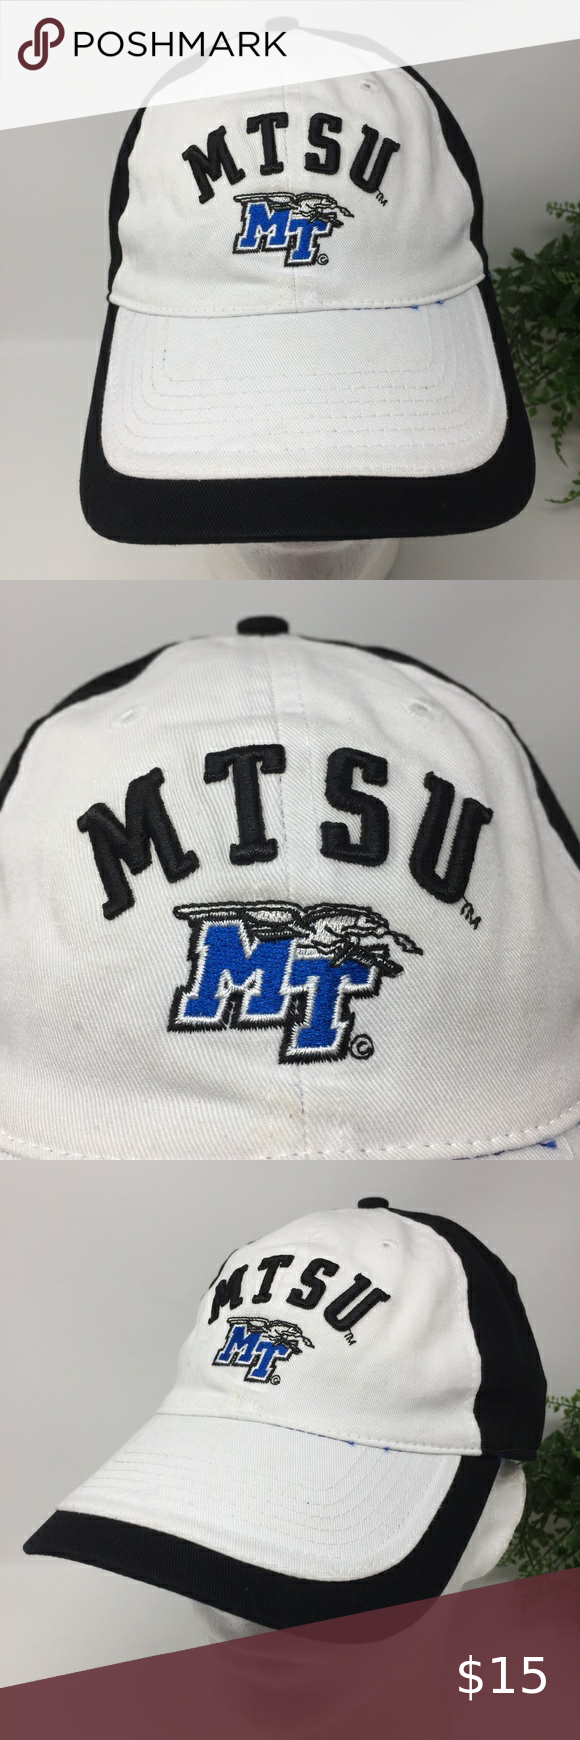 Middle Tennessee State University Blue Raiders Hat This listing is for a ..., #baseballGameDayOutfit #Blue #ecuGameDayOutfit #GameDayOutfitbasketball #GameDayOutfitcollege #GameDayOutfitfall #GameDayOutfitfootball #GameDayOutfithighschool #GameDayOutfitsoccer #GameDayOutfitwinter #Hat #listing #Middle #nflGameDayOutfit #Raiders #state #Tennessee #University